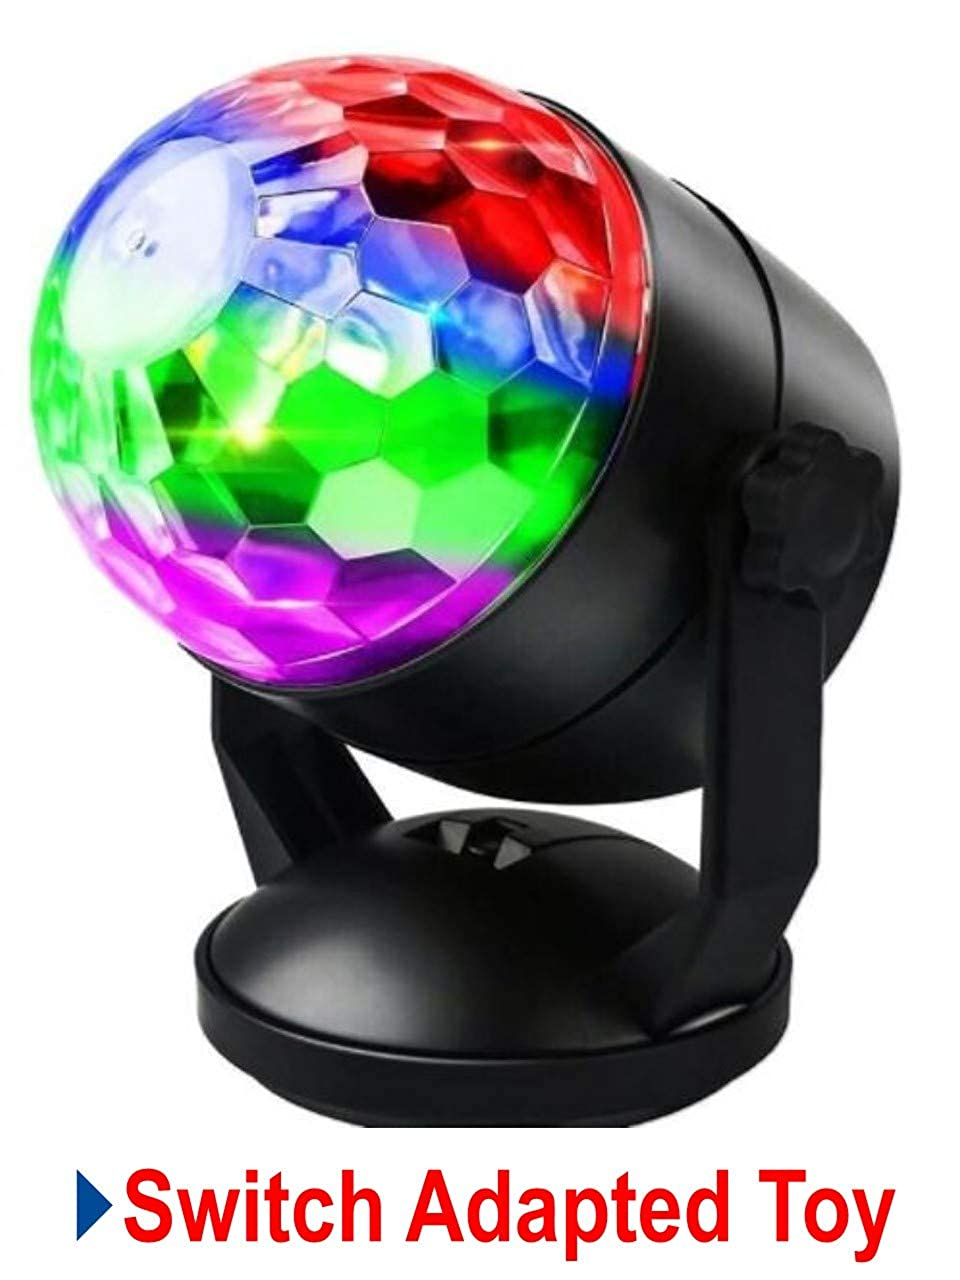 Switch Adapted Toy Disco Ball Light   Adaptive Toys   Special Needs Switch Toys   Switch Toys